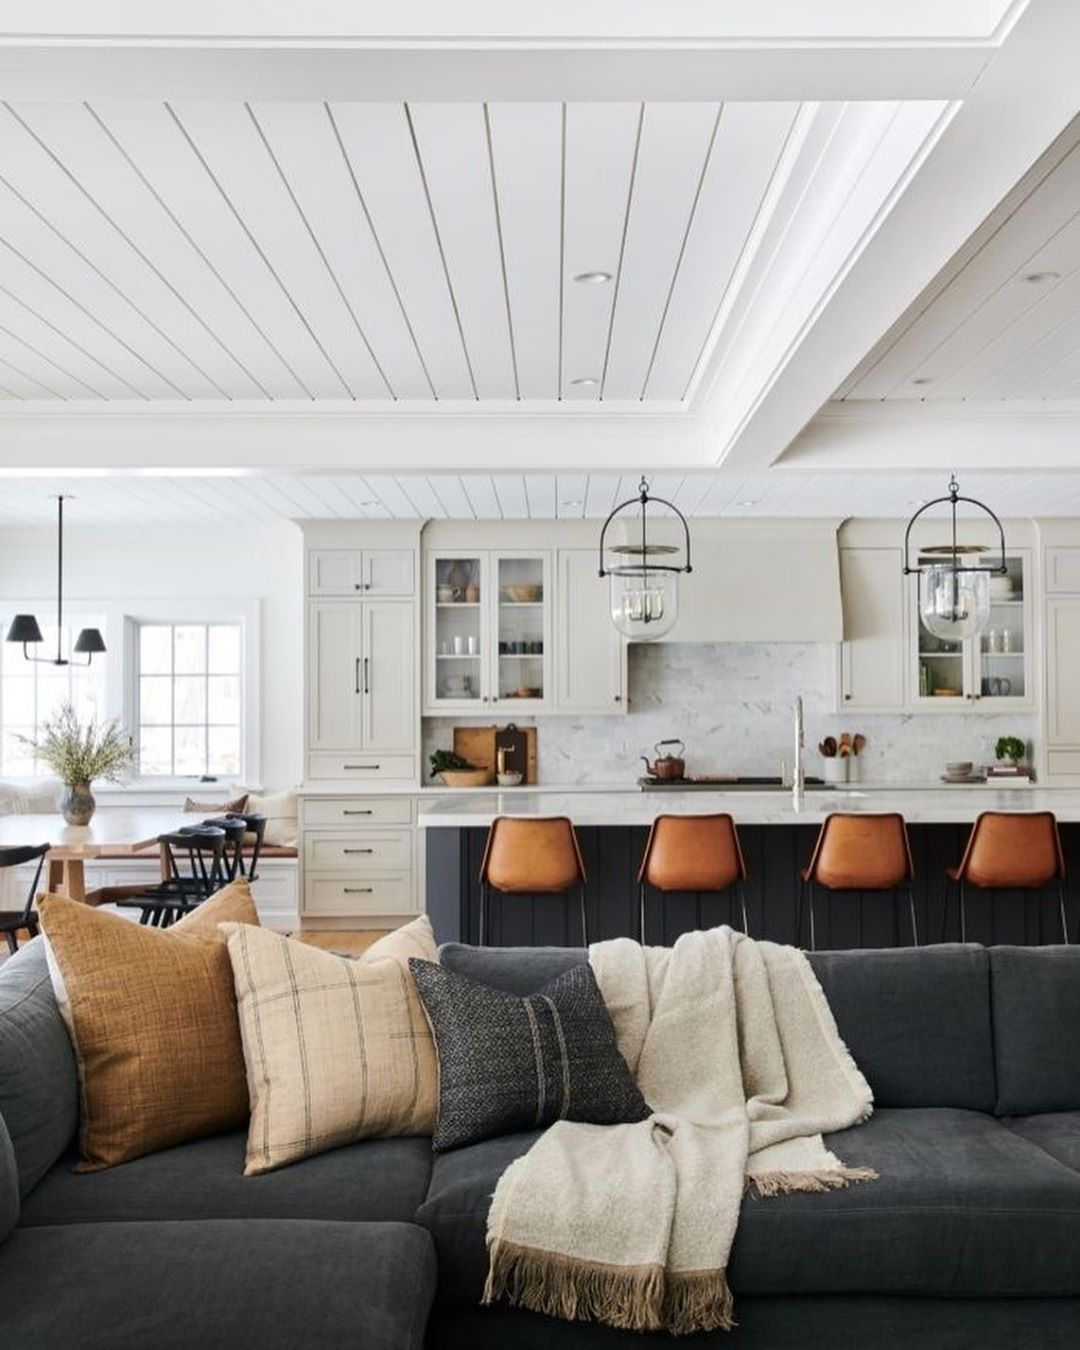 """Farmhouse Goals on Instagram: """"All the hearts for this gorgeous open concept living room area 😍 • Tap the link in bio to shop decor  furniture 🌻 • Share your style! →…"""""""